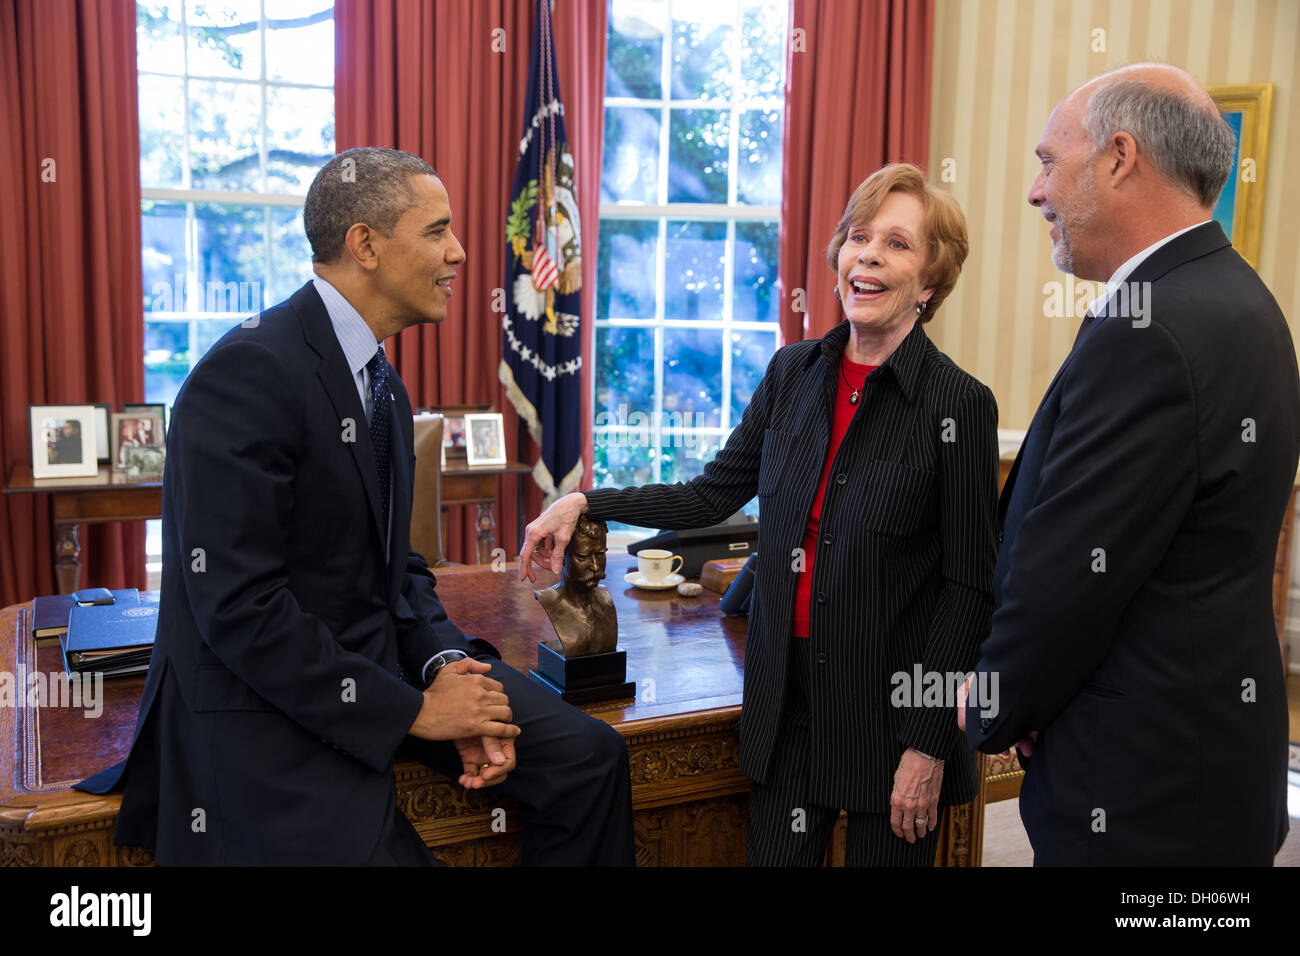 President Barack Obama talks with Carol Burnett, the 2013 recipient of the Mark Twain Prize for American Humor, and her husband - Stock Image